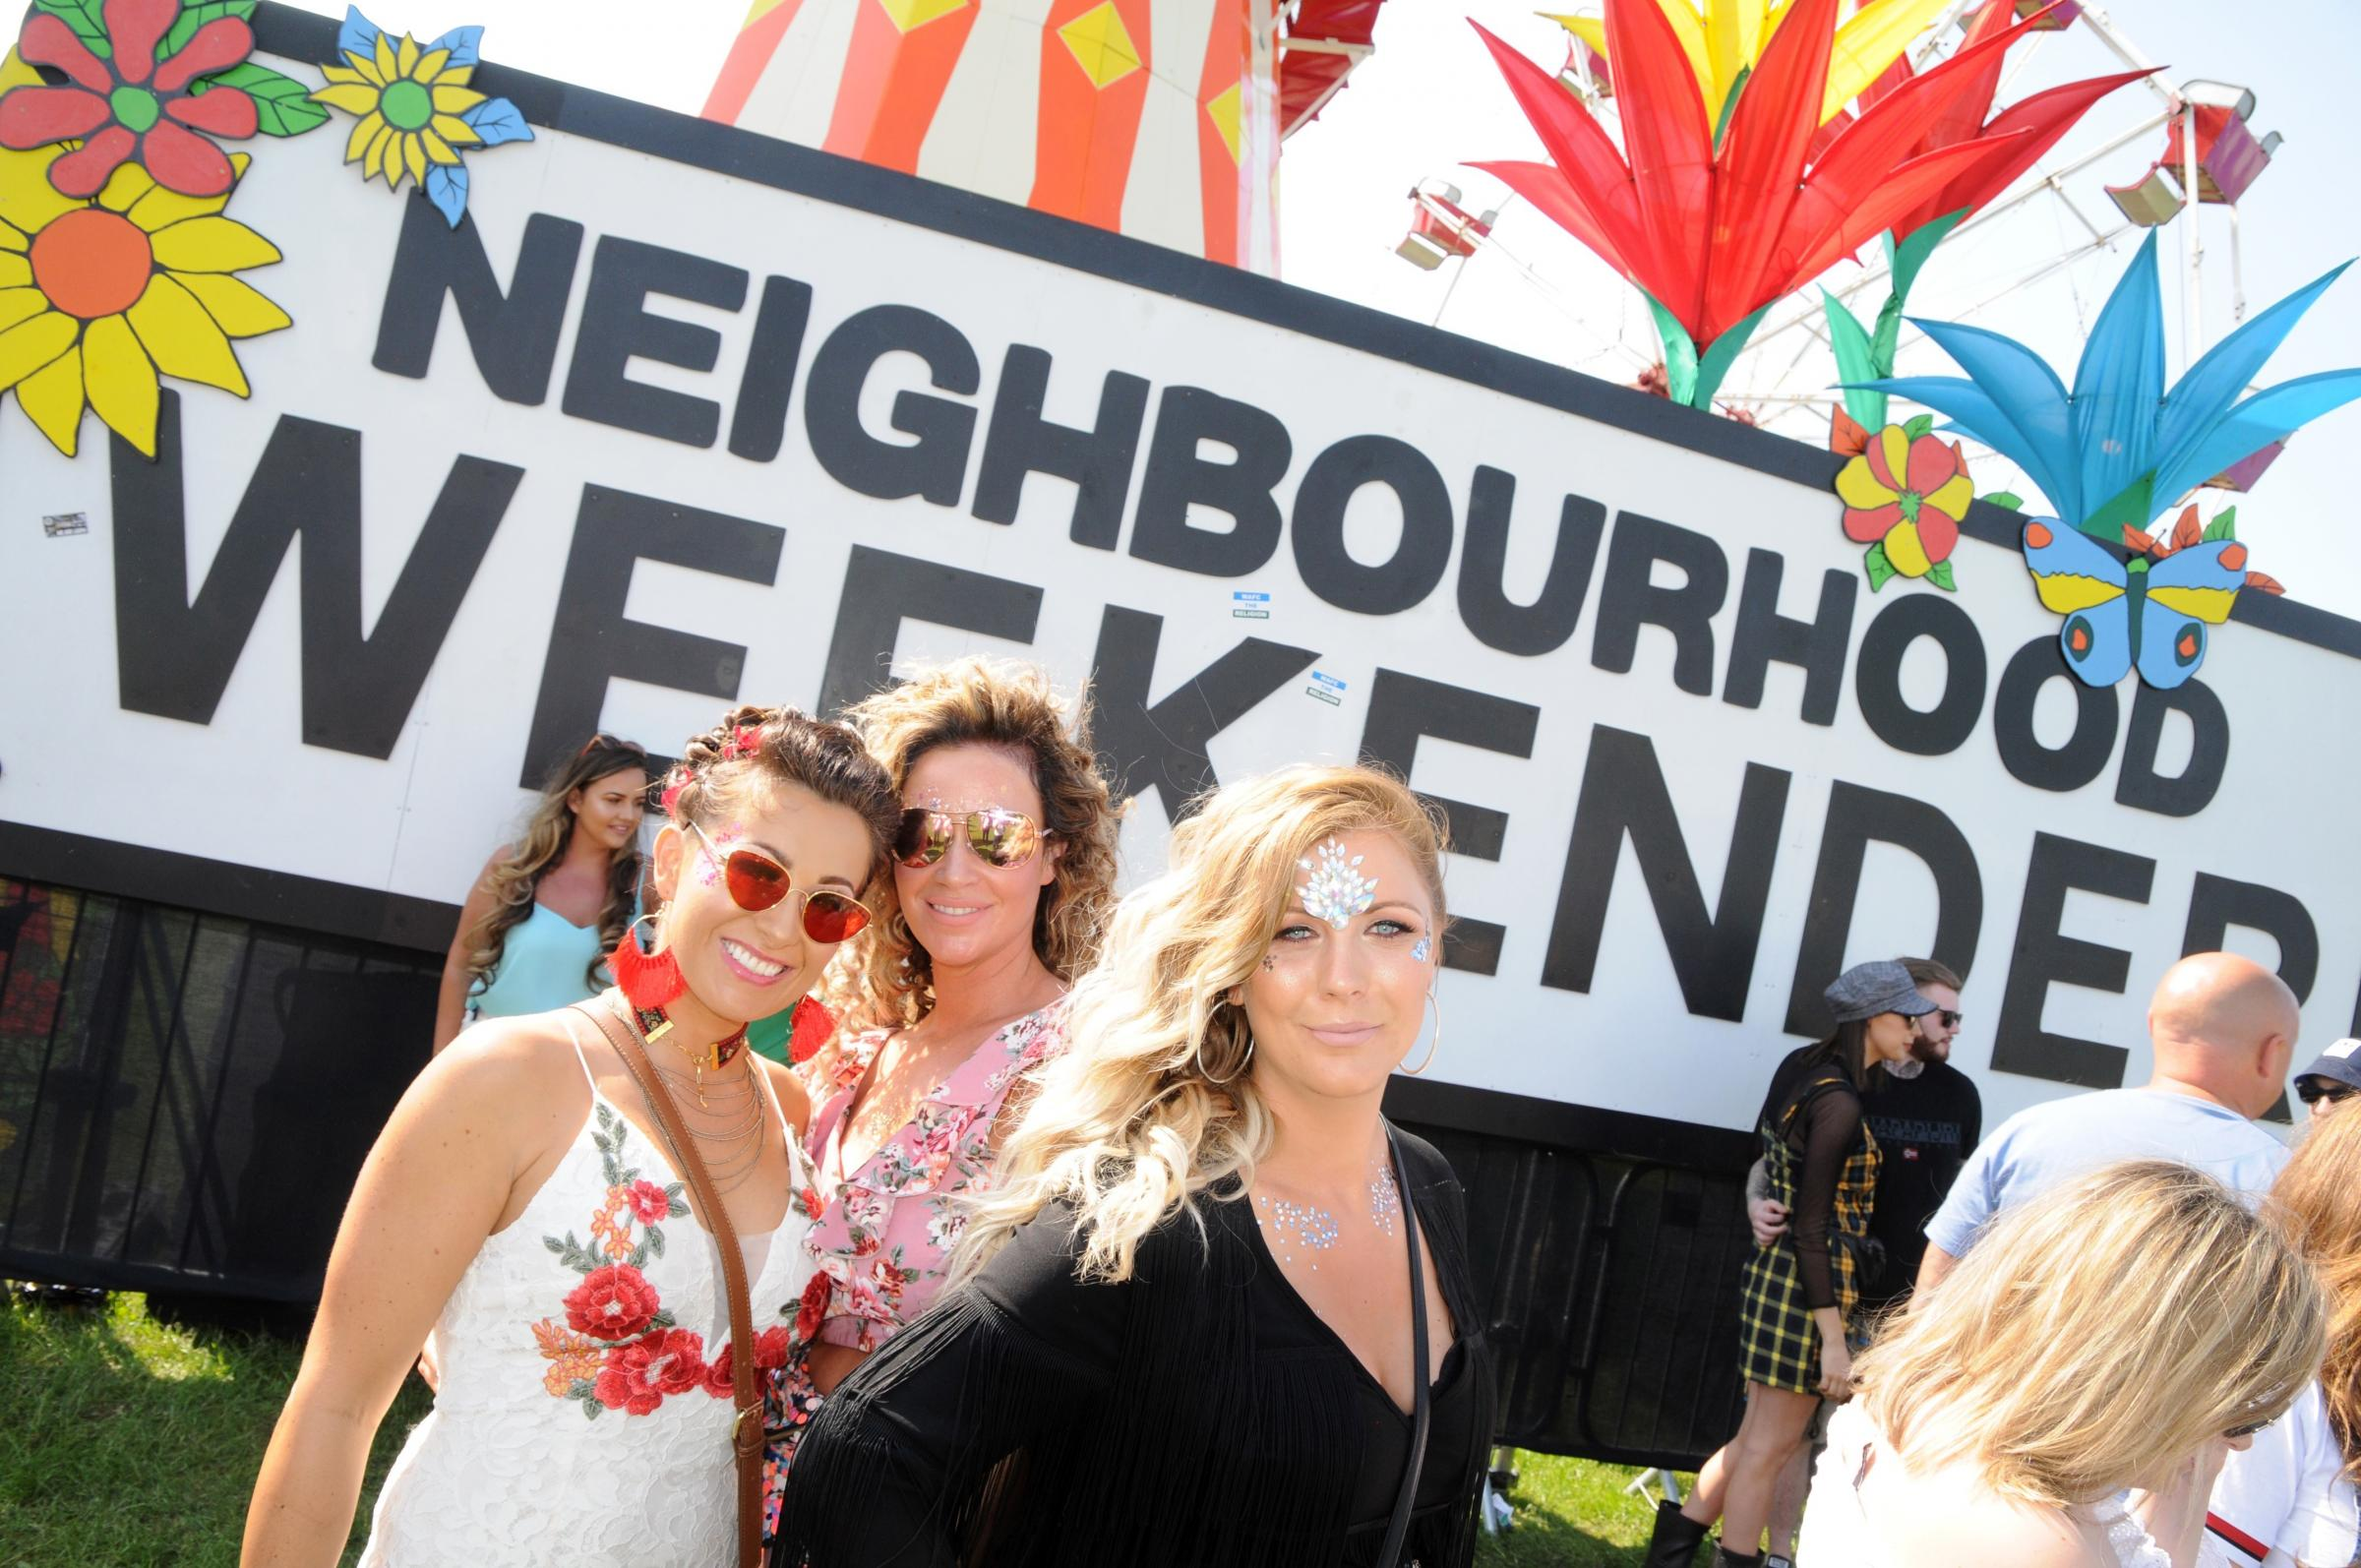 How you can save almost £15 on Neighbourhood Weekender tickets